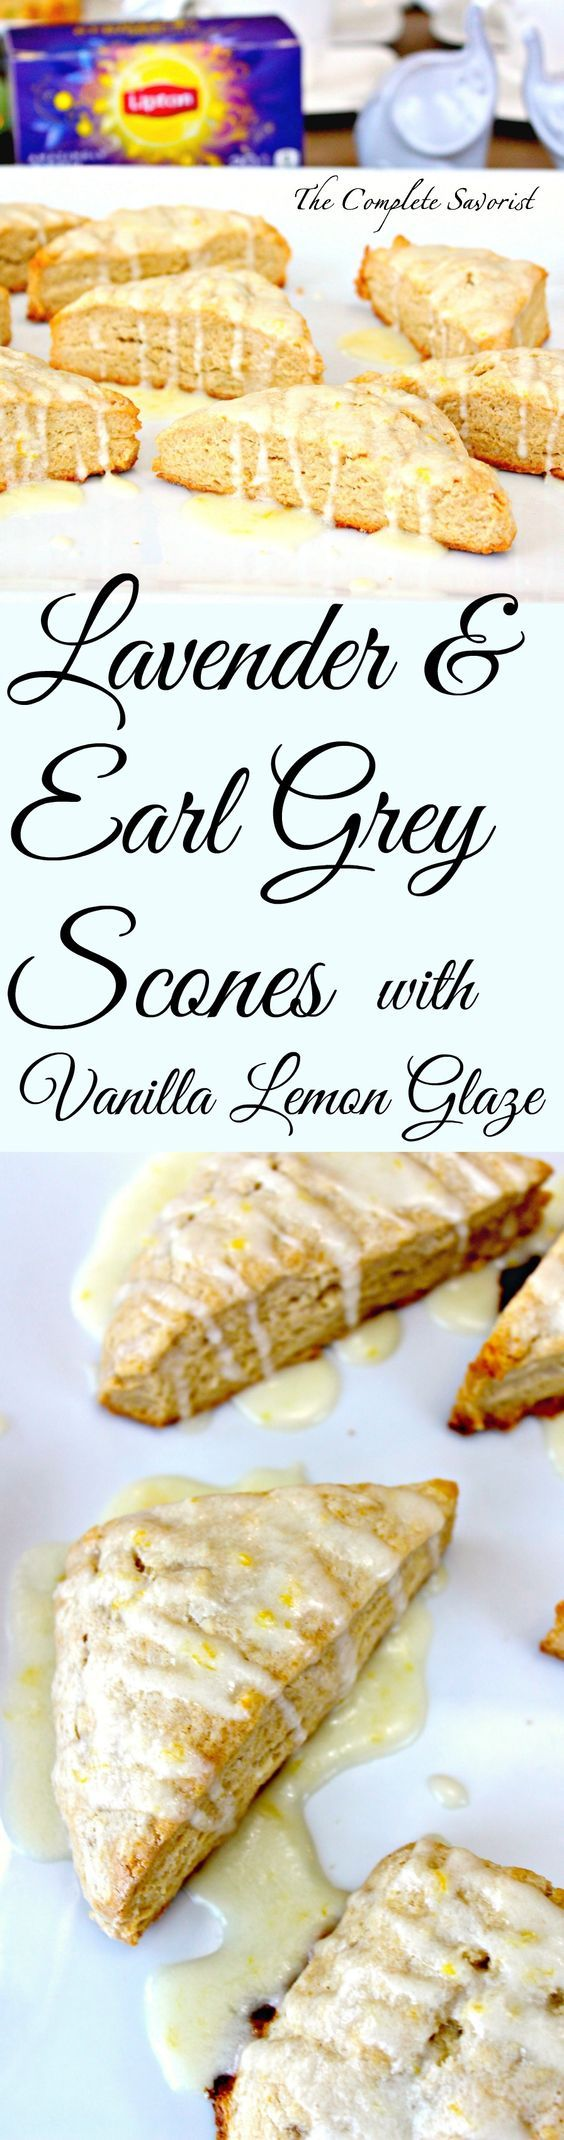 Lavender and Earl Gray Scones with Lemon Vanilla Glaze-teabags and lavender steeped in cream-The Complete Savorist